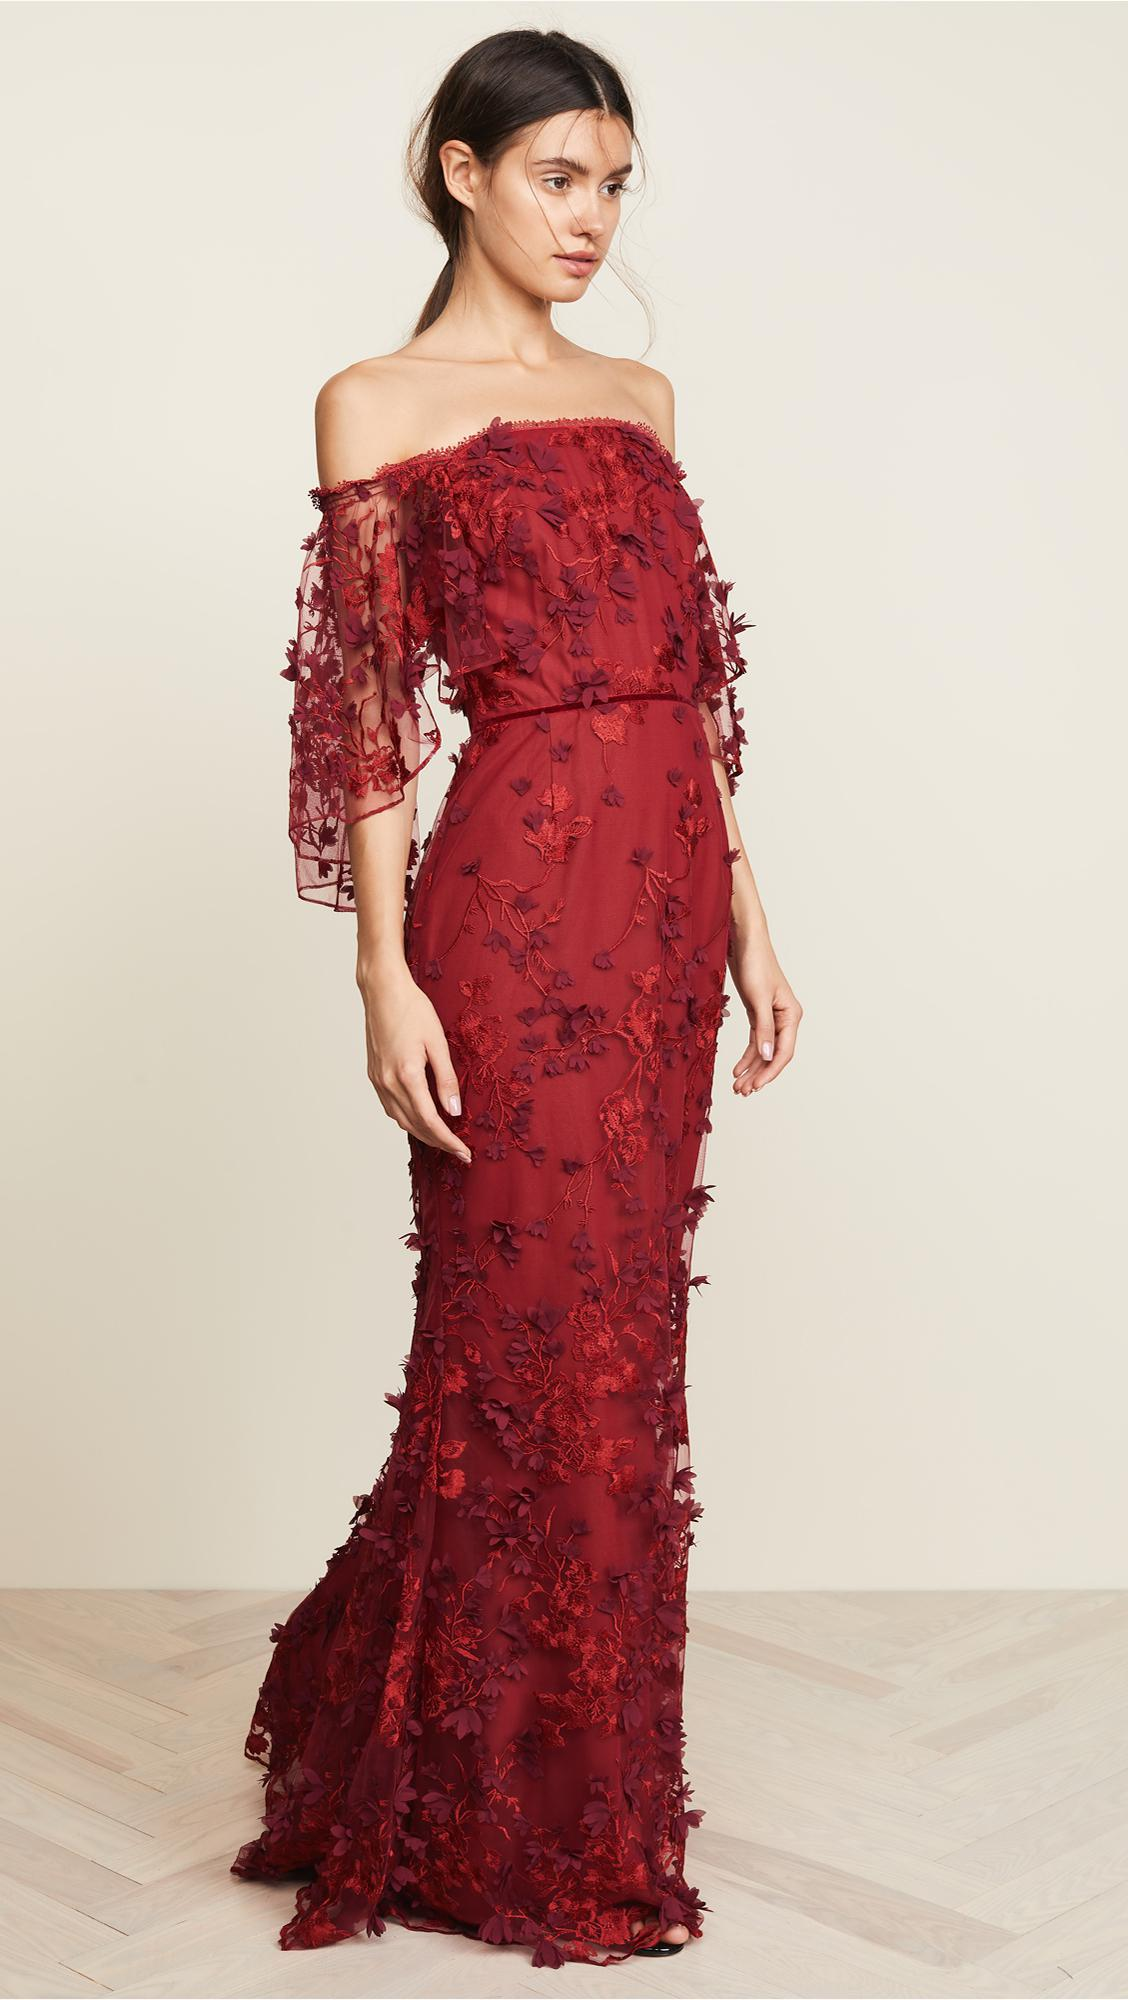 7defeb3aa7 Marchesa notte Off-the-shoulder Embroidered Appliquéd Tulle Gown in Red -  Save 70% - Lyst